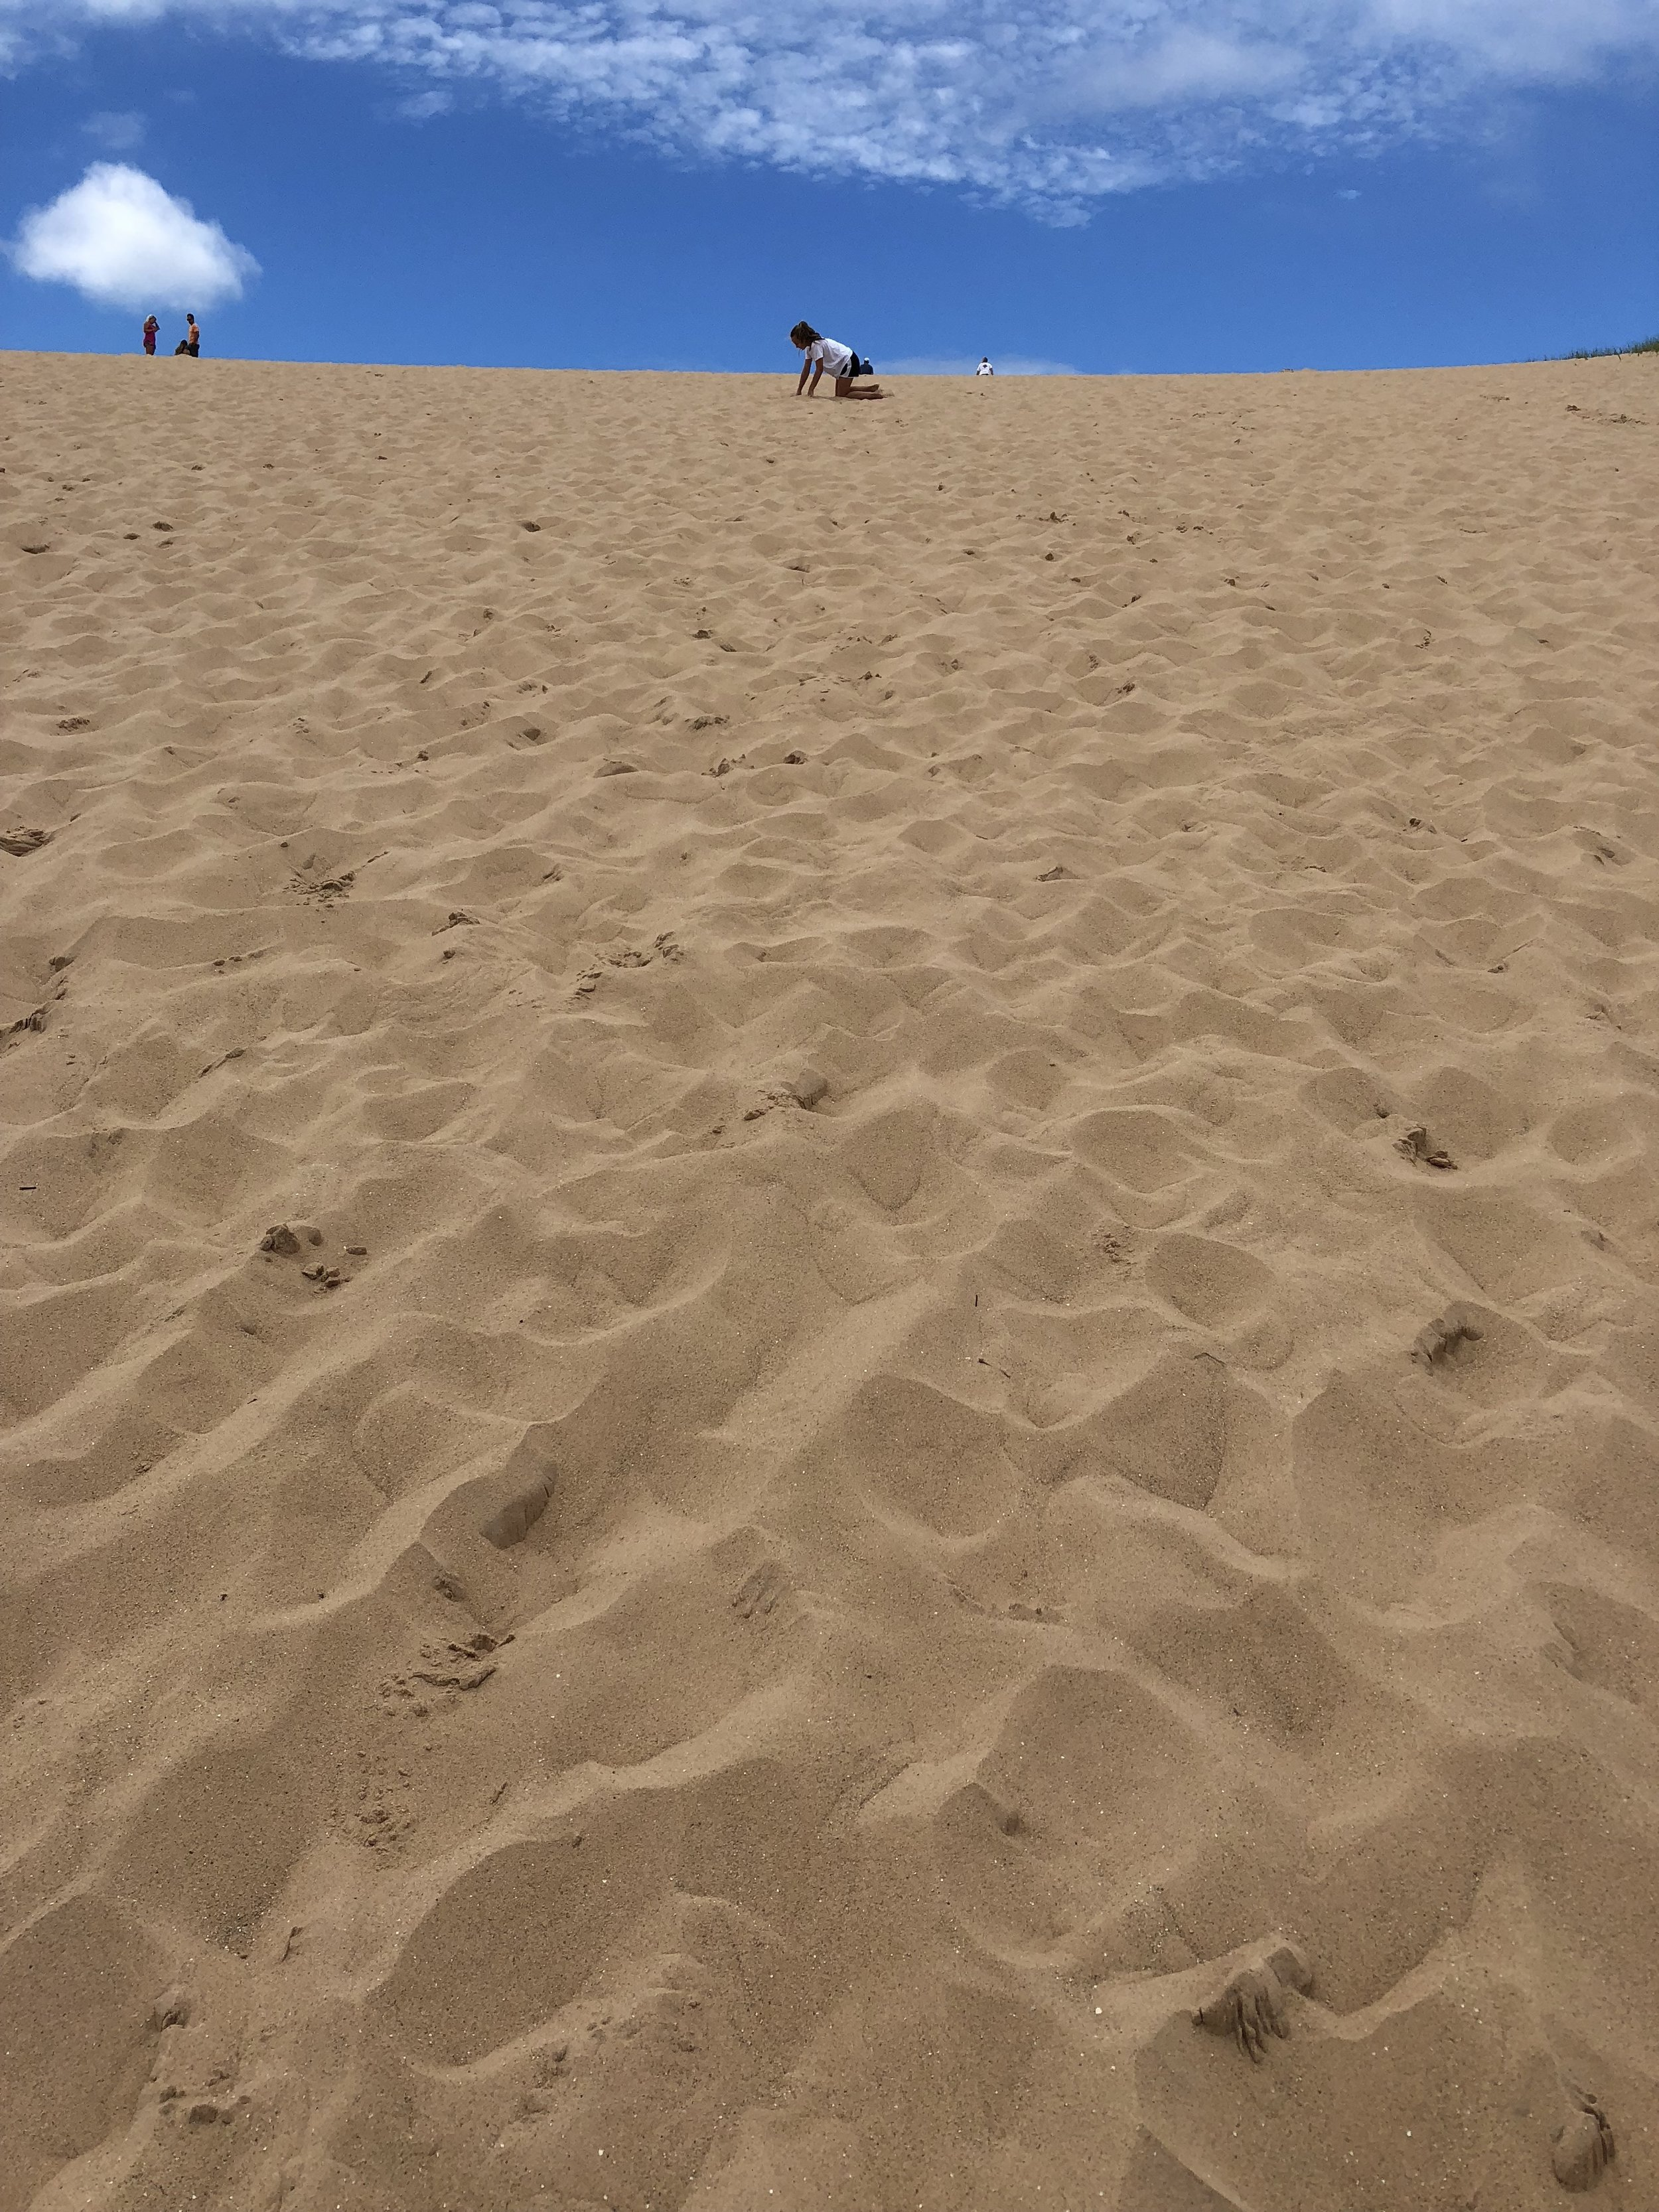 The long, arduous climb up the dune may bring some 13 year olds to their very knees.